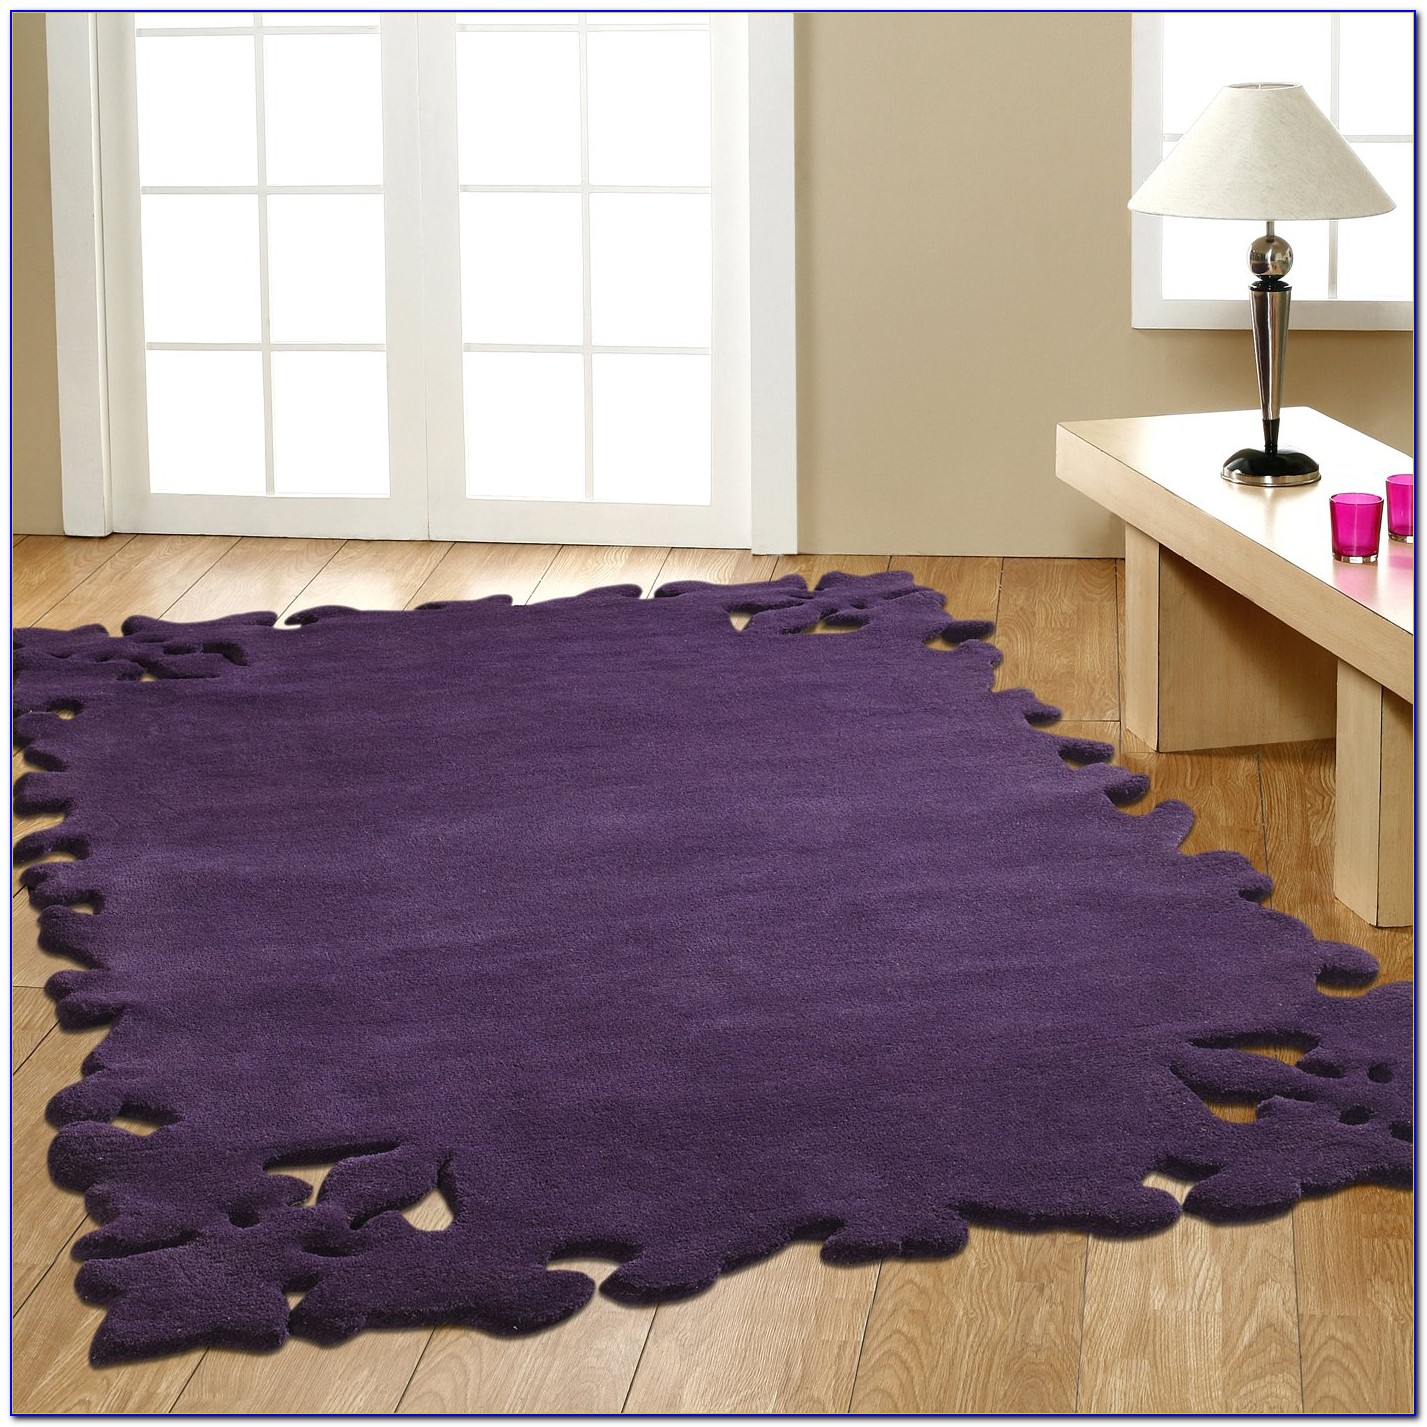 Lavender Braided Area Rugs